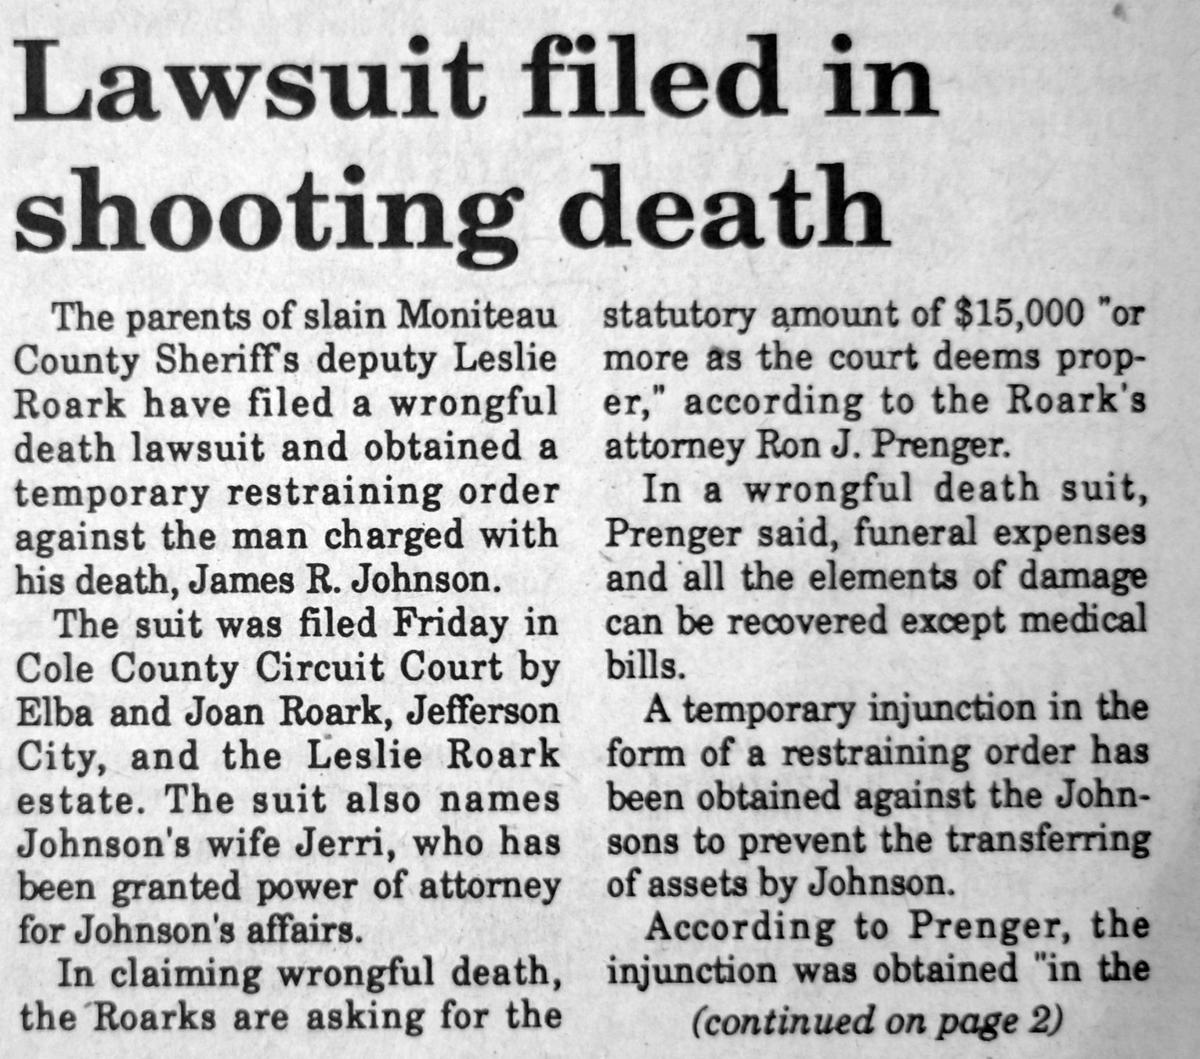 Lawsuit filed in shooting death news clipping